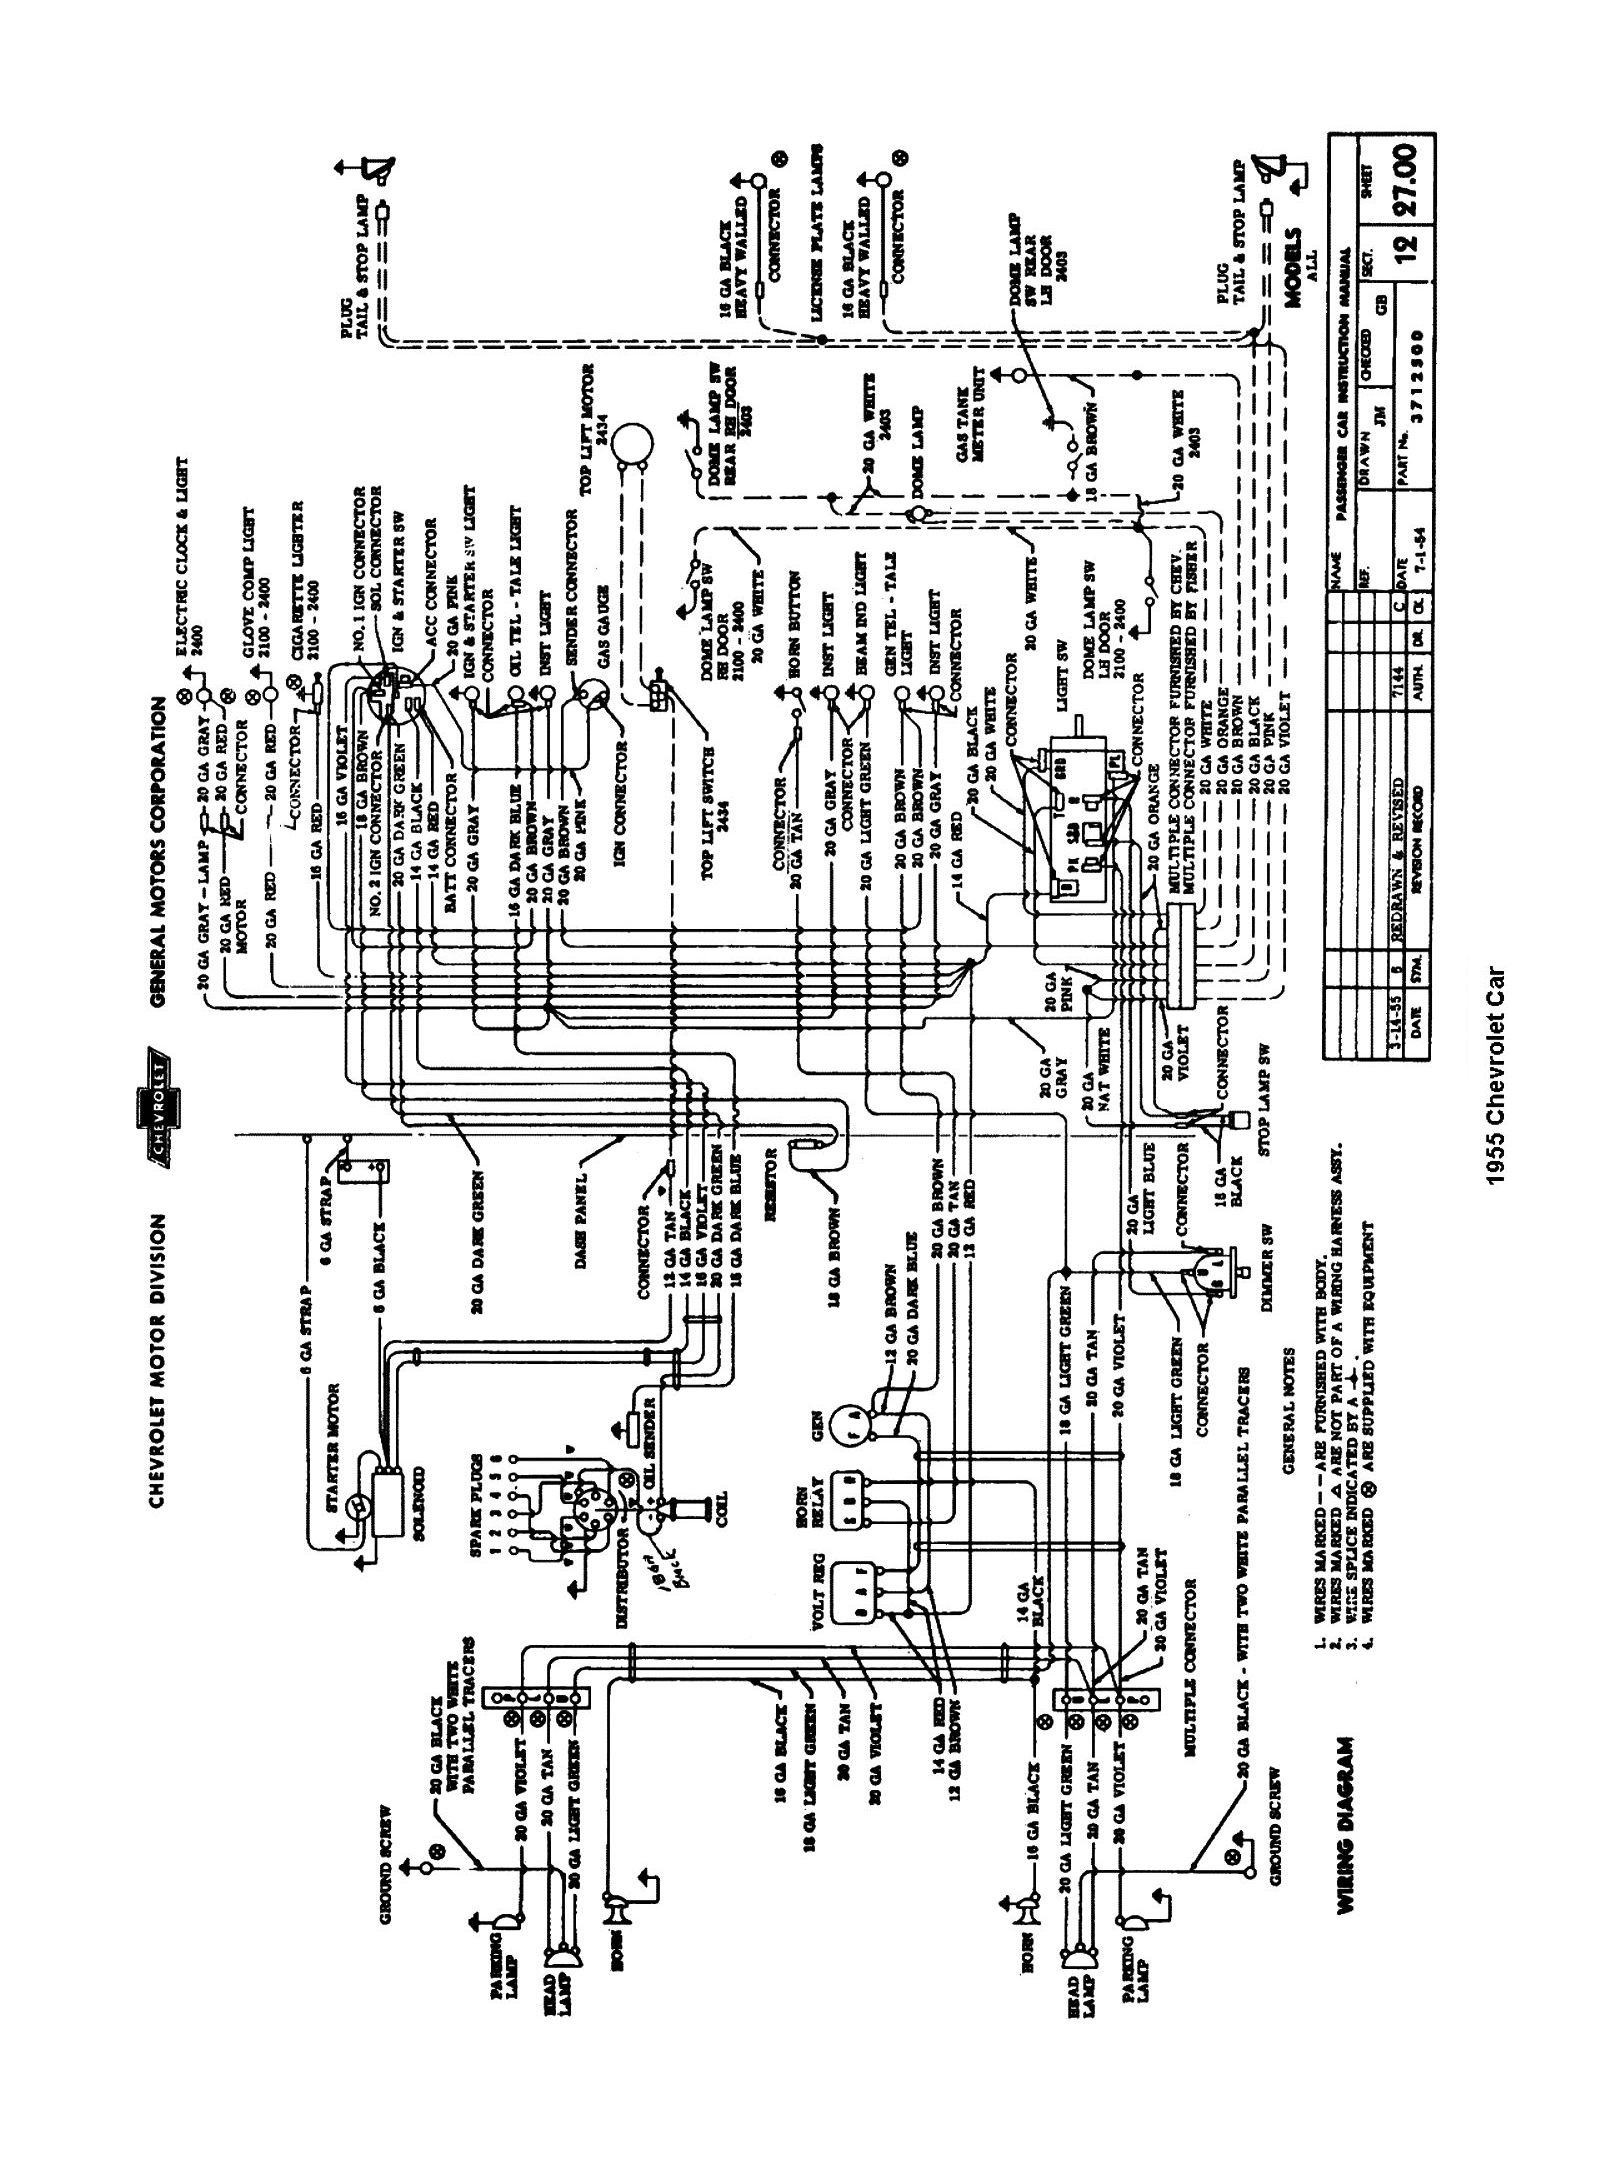 57 Chevy Wiring Schematic Chevy Wiring Diagram Images